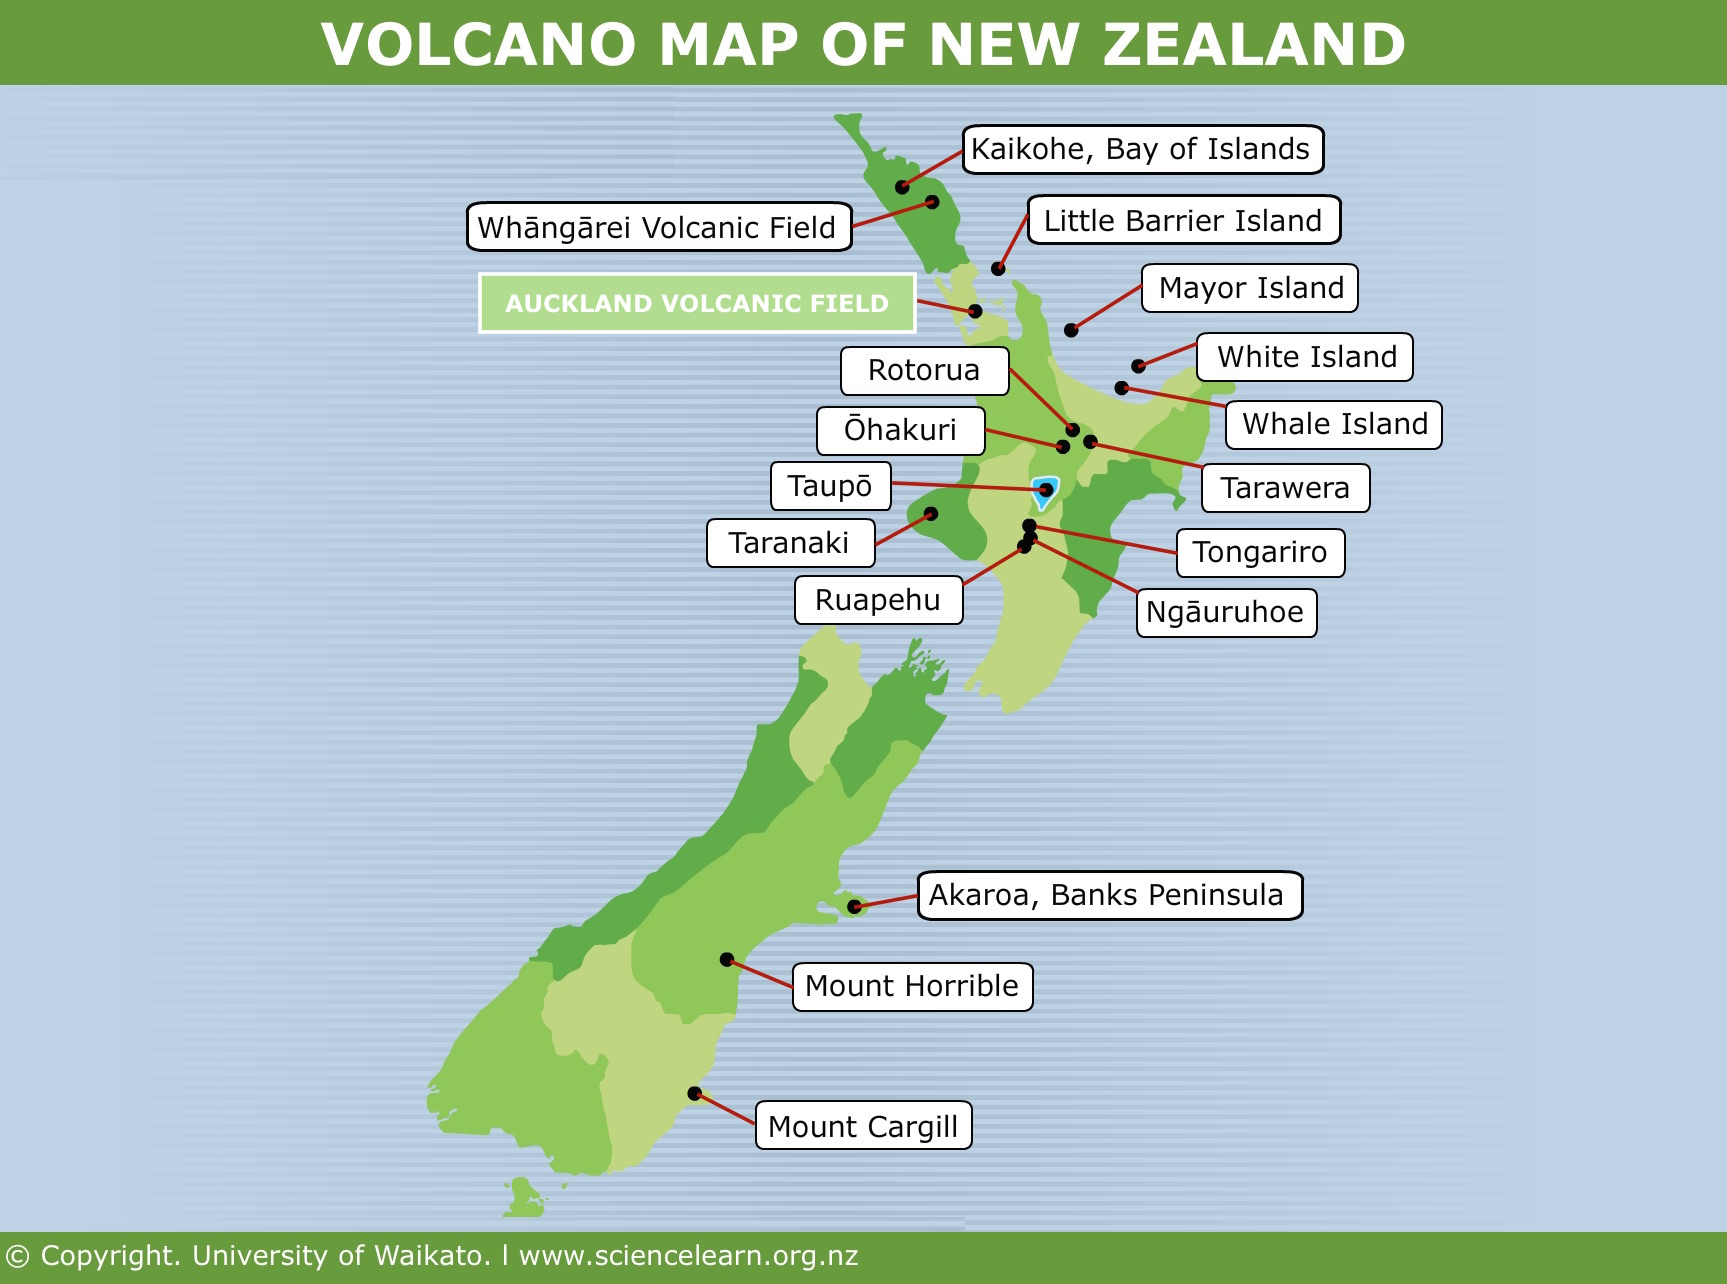 Plate tectonics, volcanoes and earthquakes — Science Learning Hub